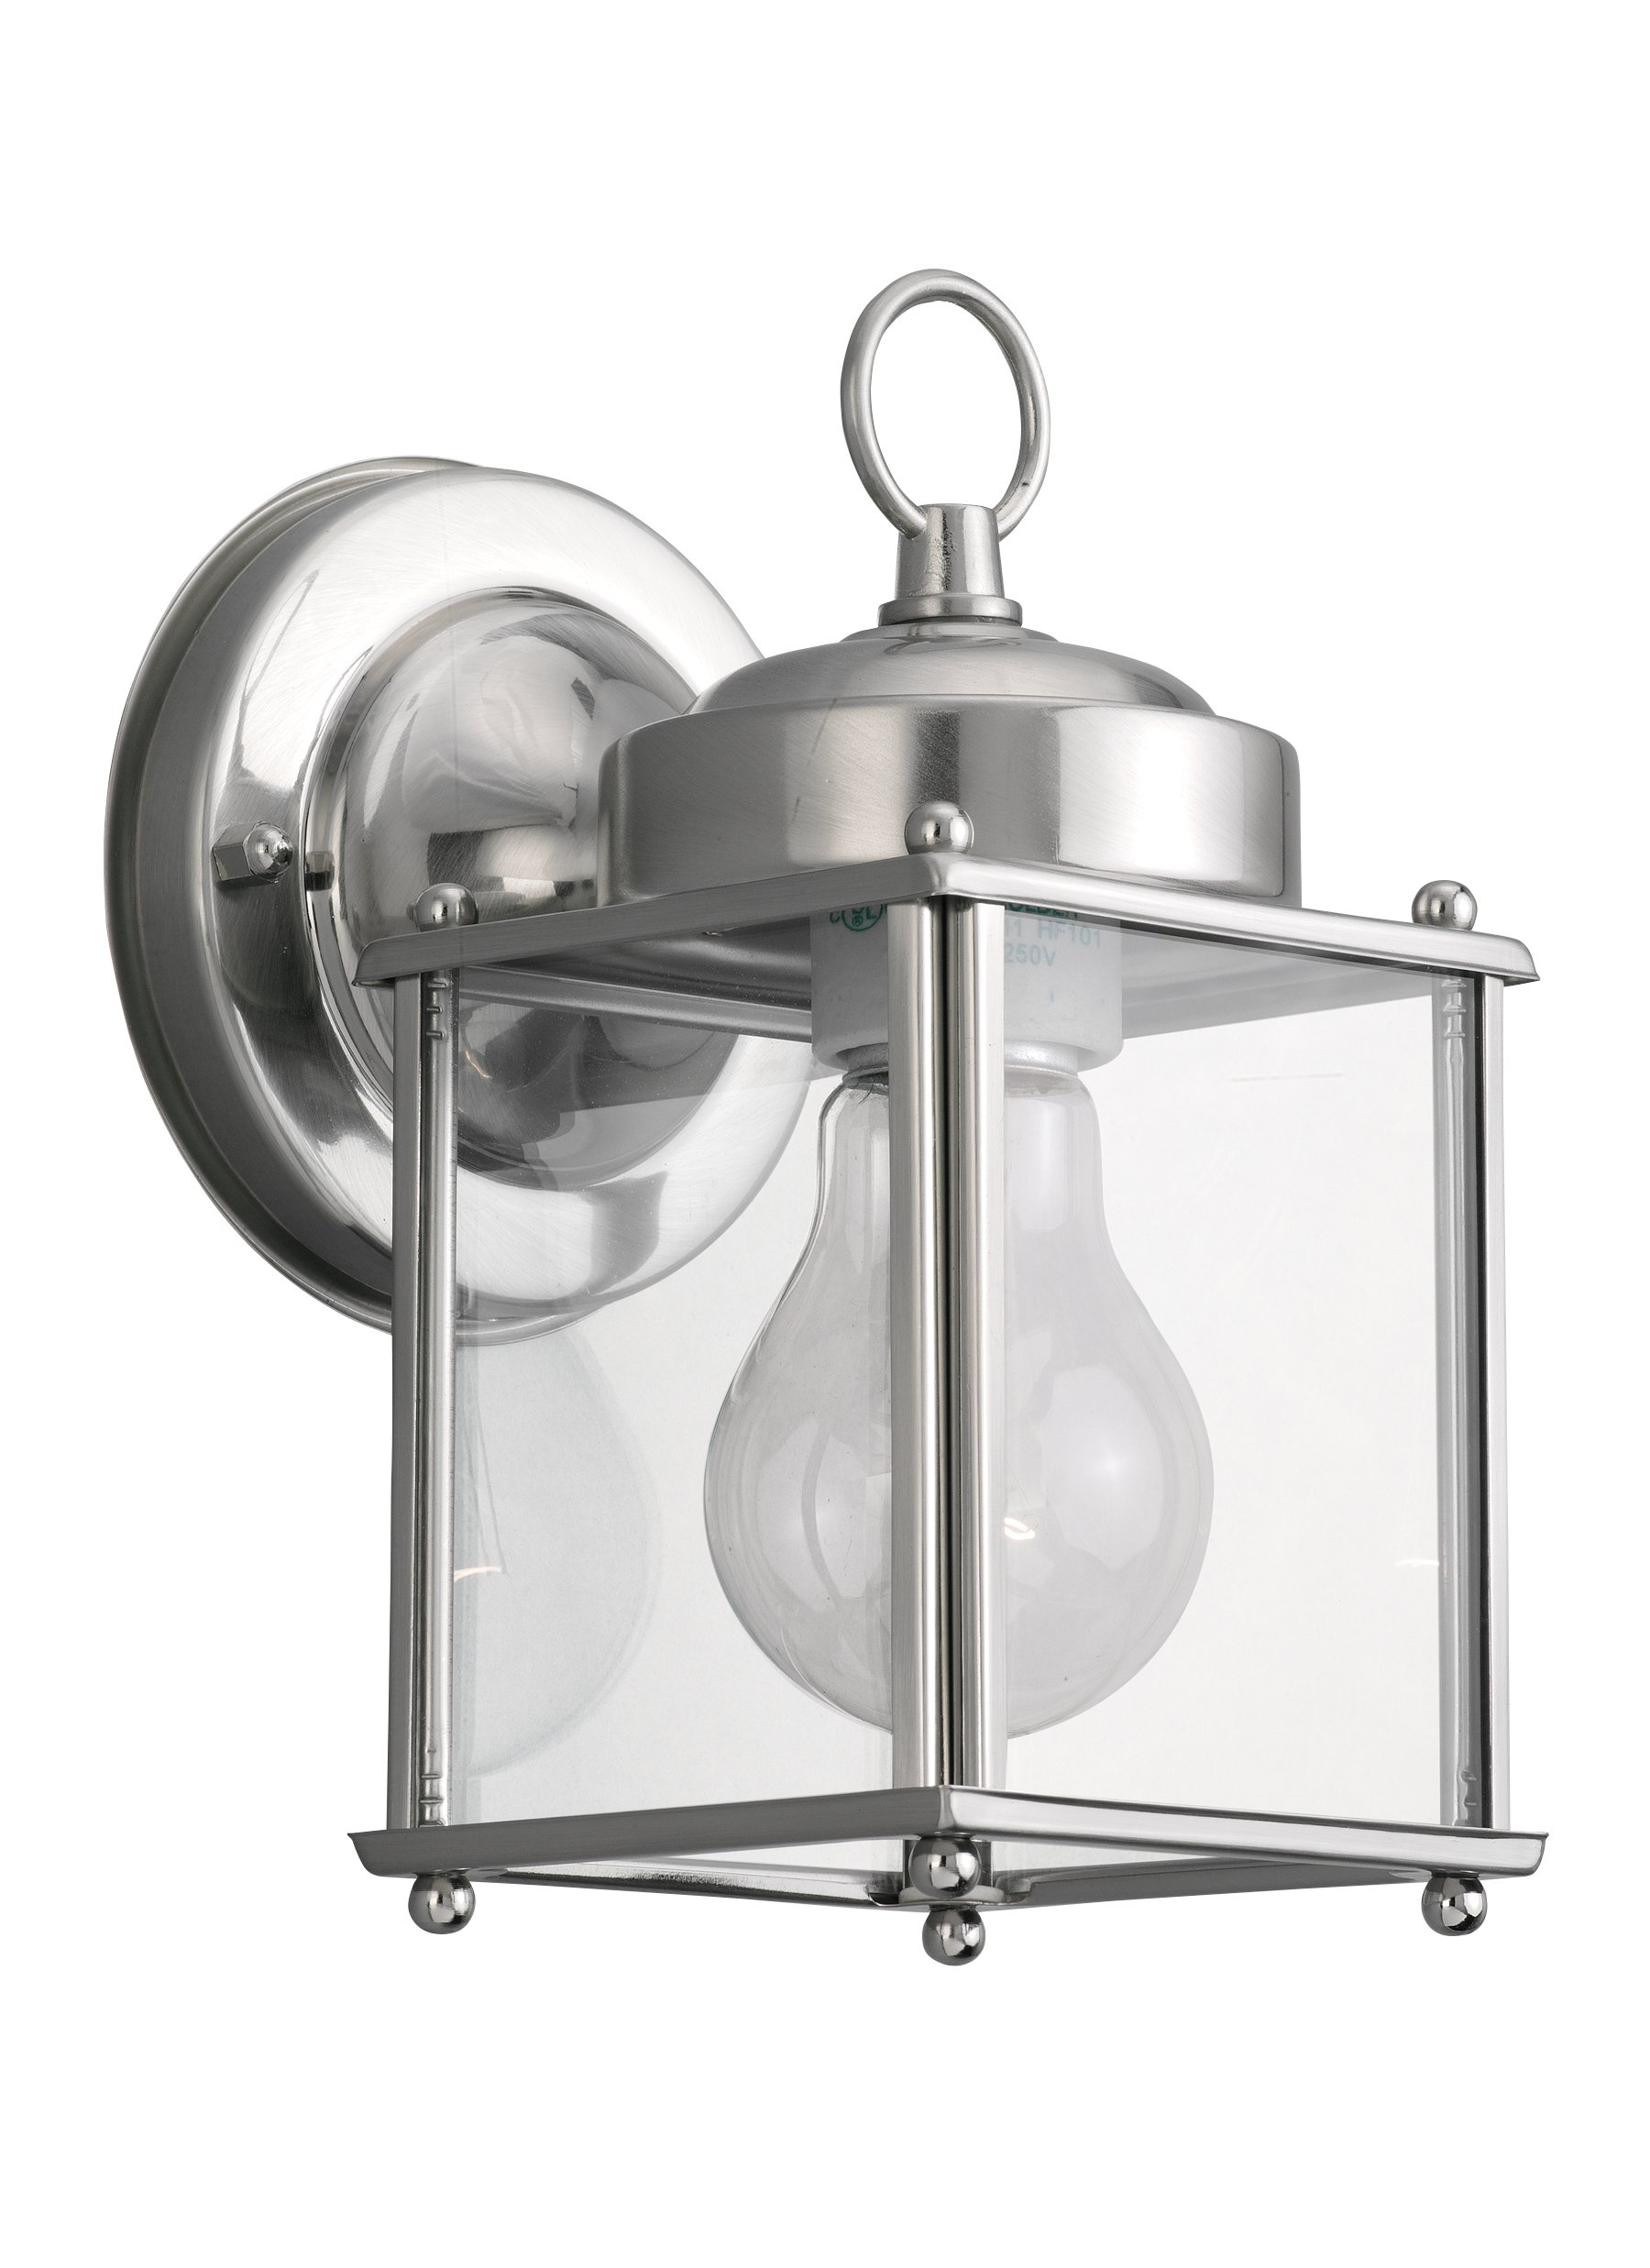 Sea Gull Lighting 8592-965 New Castle One-Light Outdoor Wall Lantern with Clear Glass Panels, Antique Brushed Nickel Finish